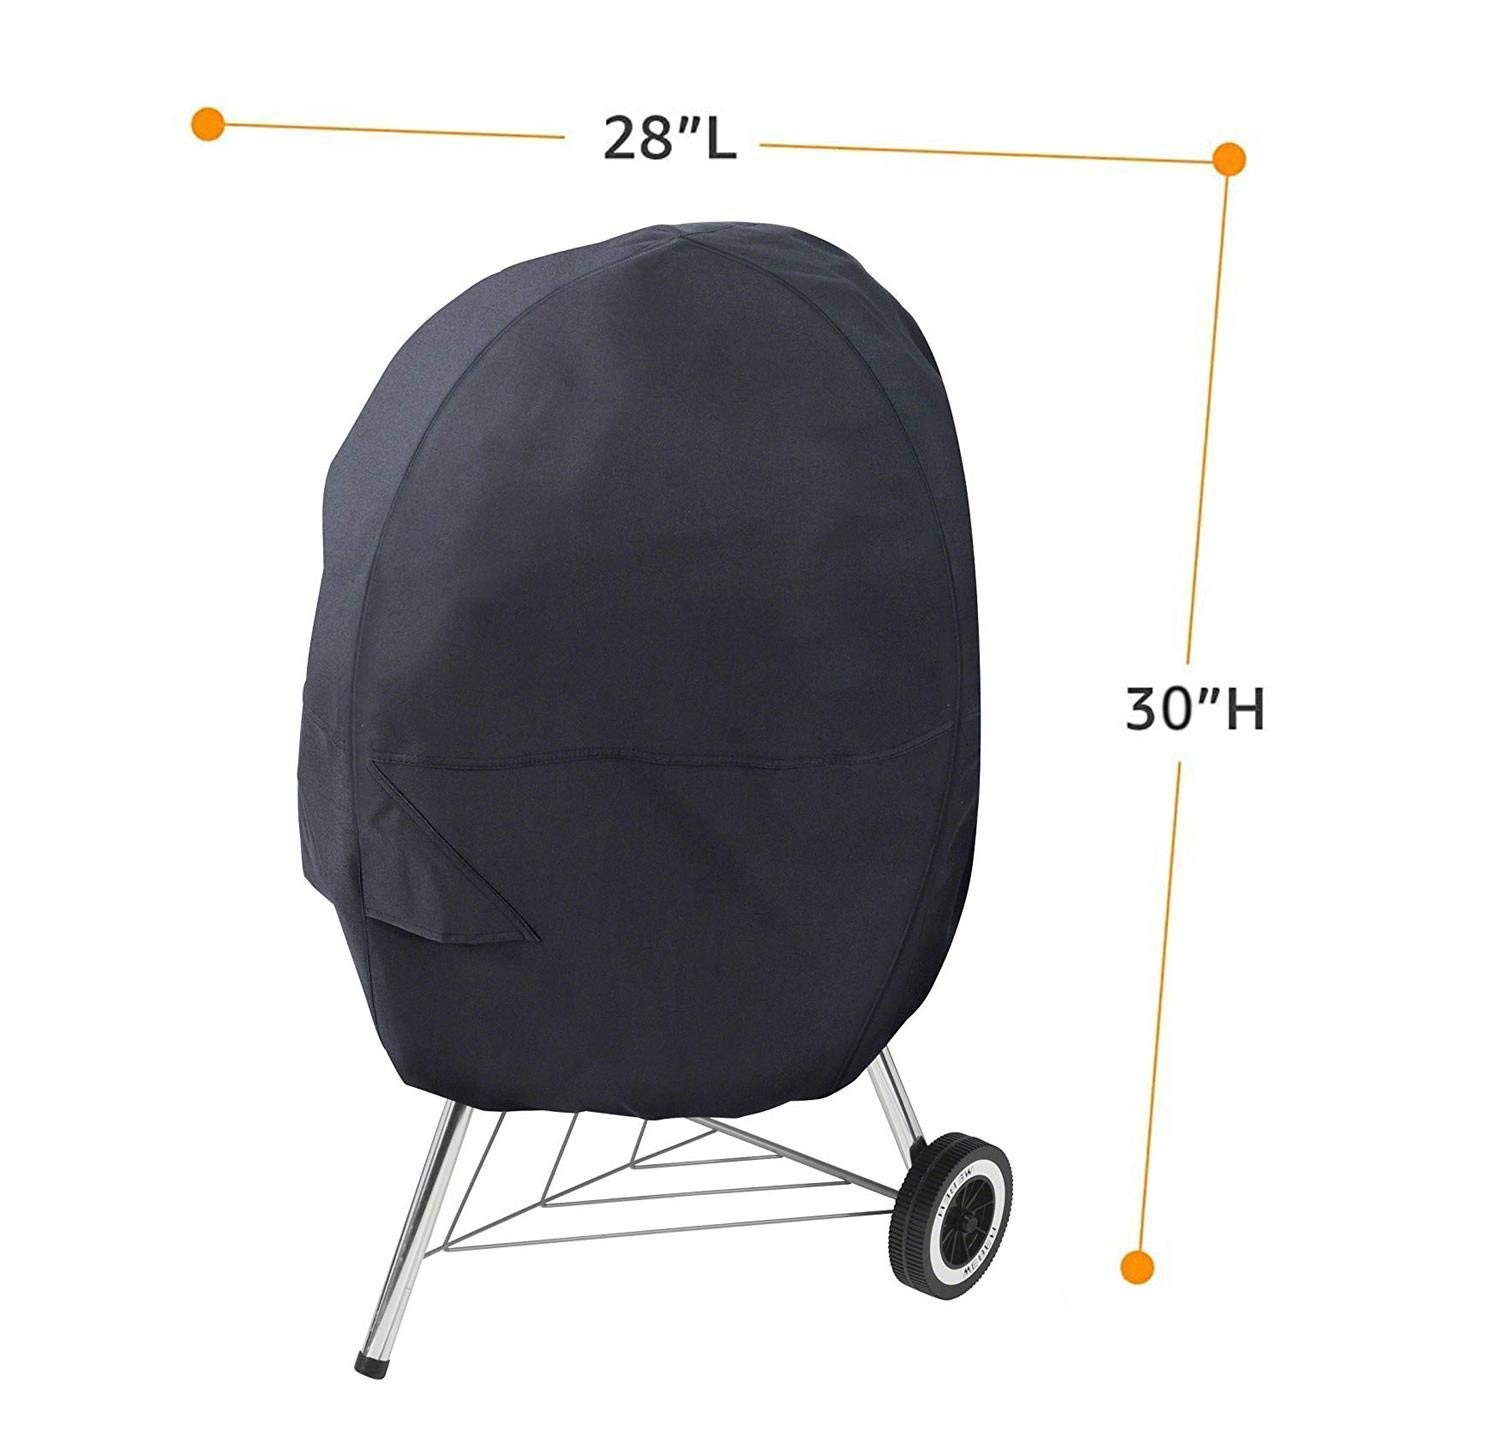 Skyee Upgraded BBQ Grill Cover, 30-Inch Waterproof Barbecue Grill Cover 210D Oxford Cloth Heavy Duty Gas Grill Covers Shade for Charcoal Grill (Black)